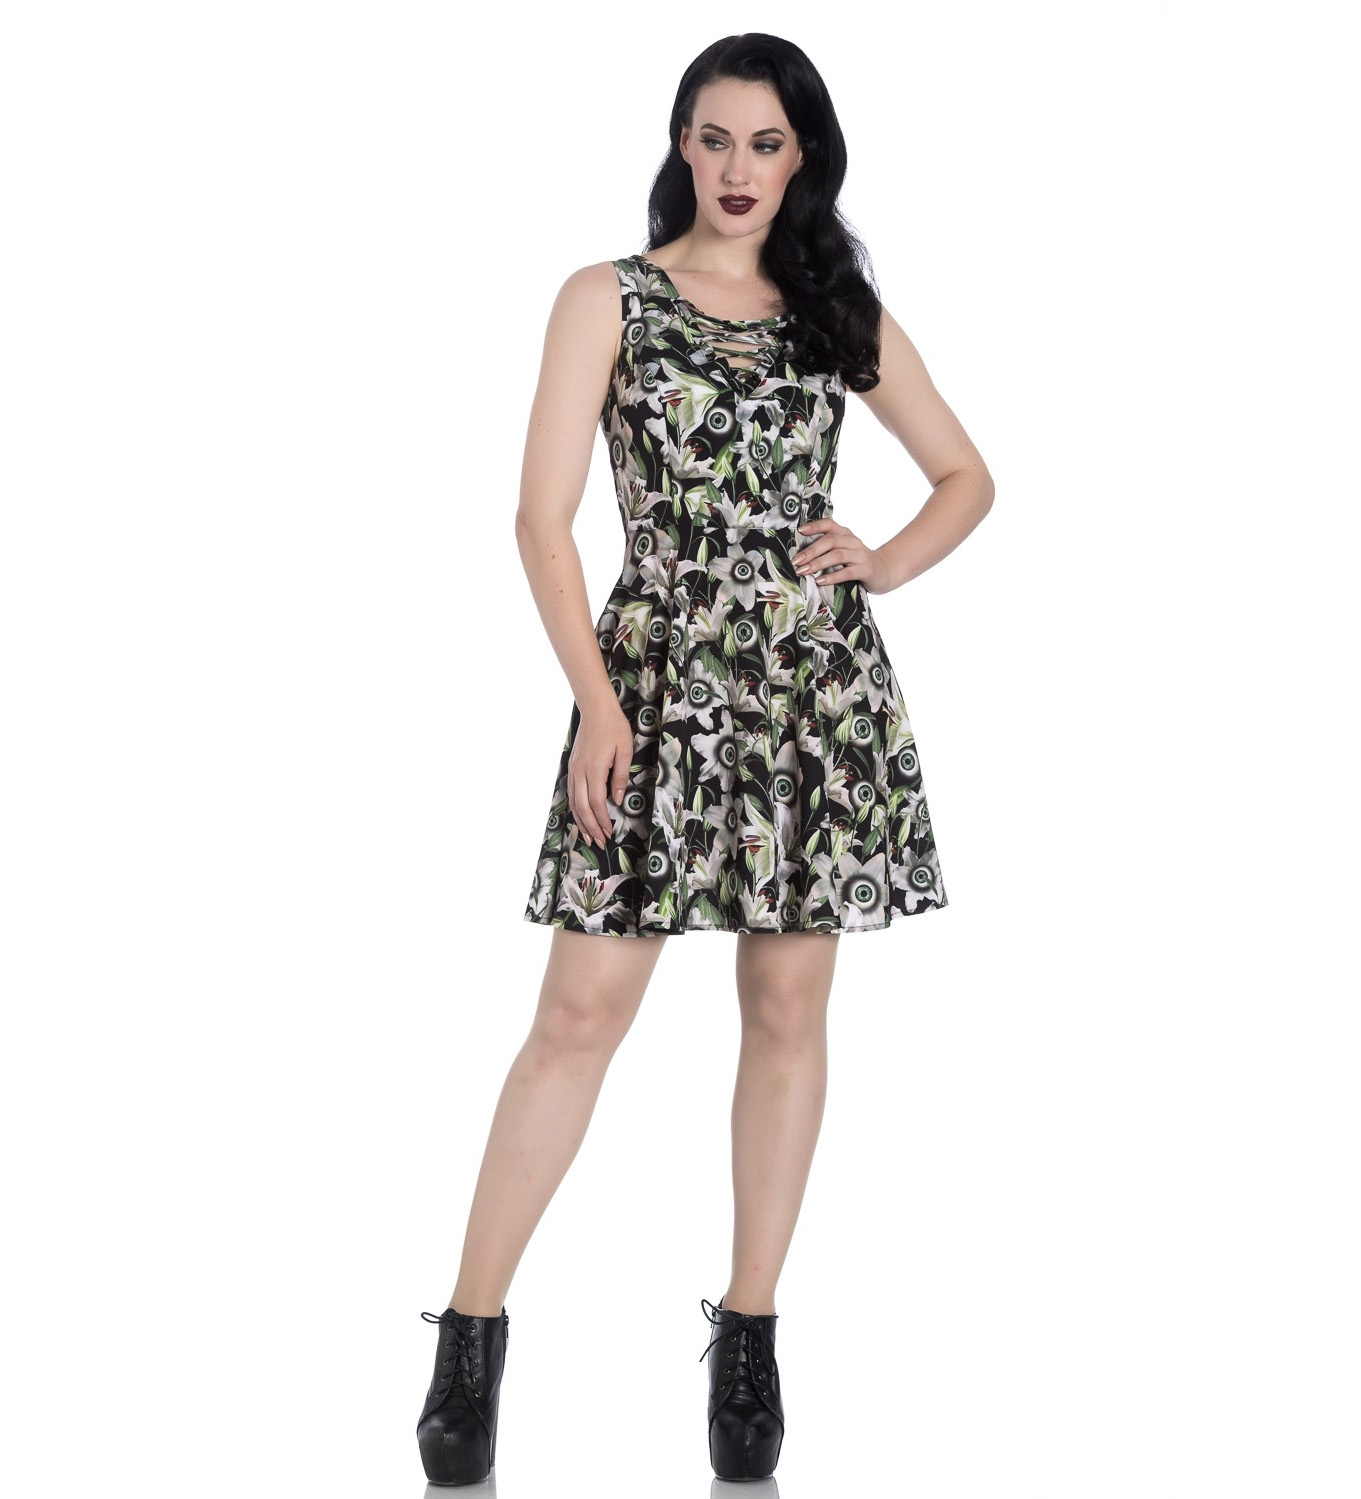 Hell-Bunny-Black-Lace-Up-Goth-Punk-Mini-Dress-PEEPERS-Eyeballs-Flowers-All-Sizes thumbnail 9